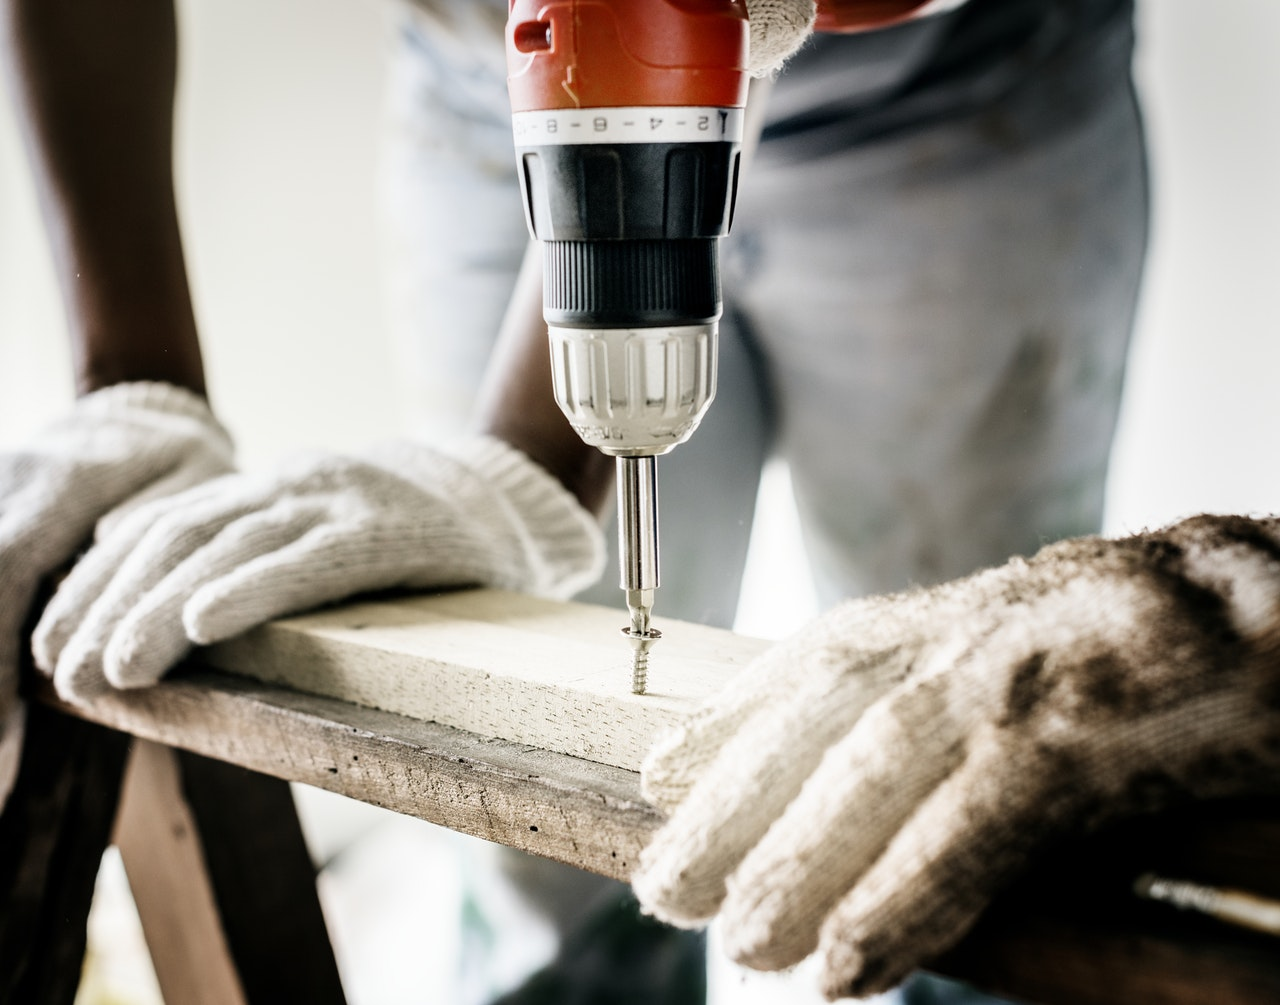 Another pre-listing tip for sellers. This one shows carpenter and drill up close.